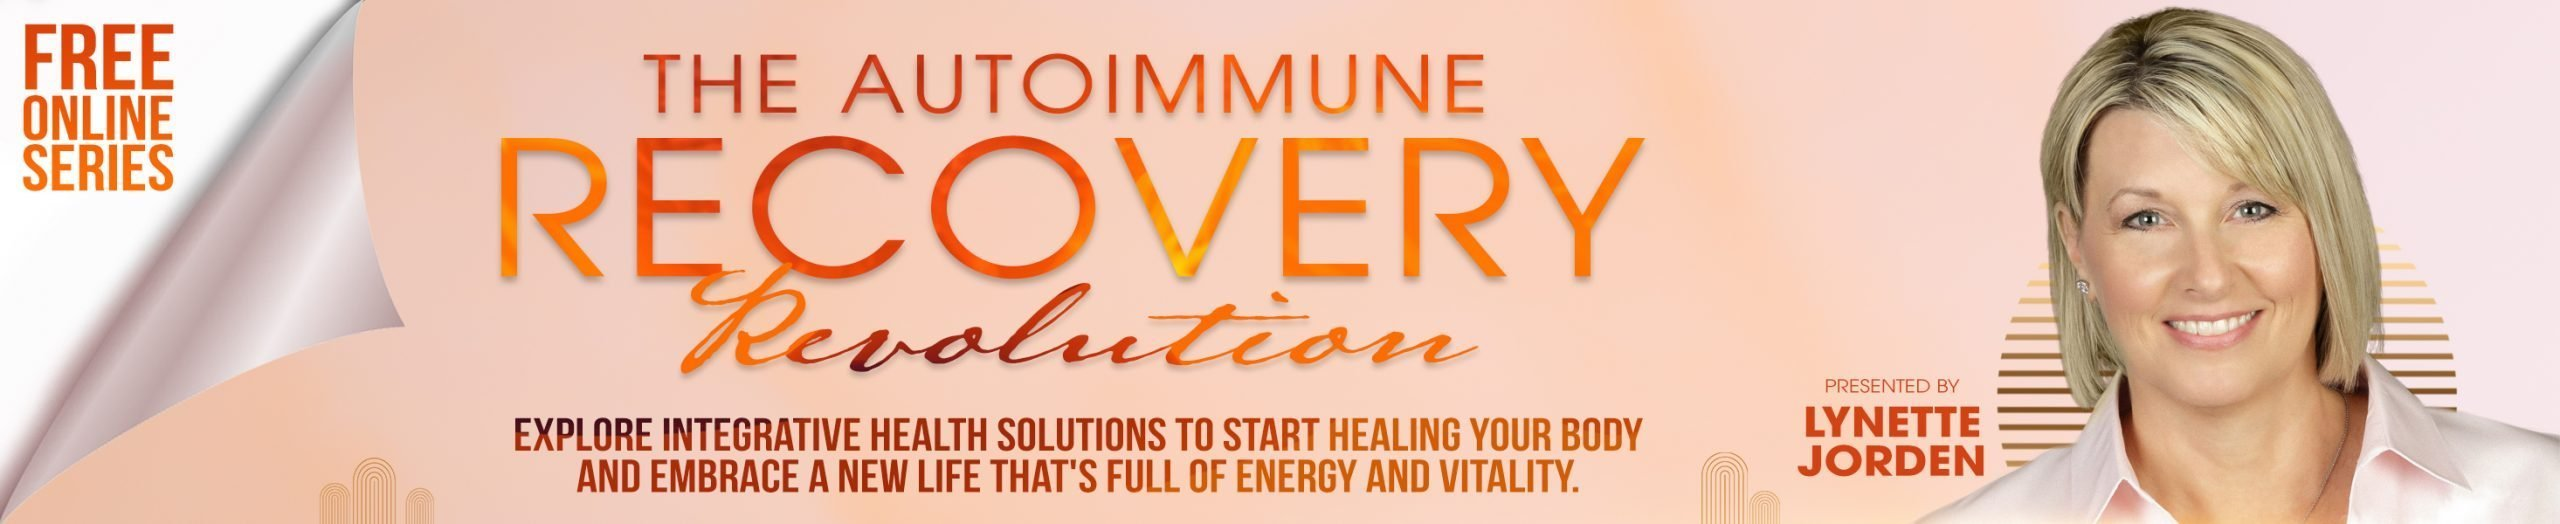 The Autoimmune Recovery Revolution